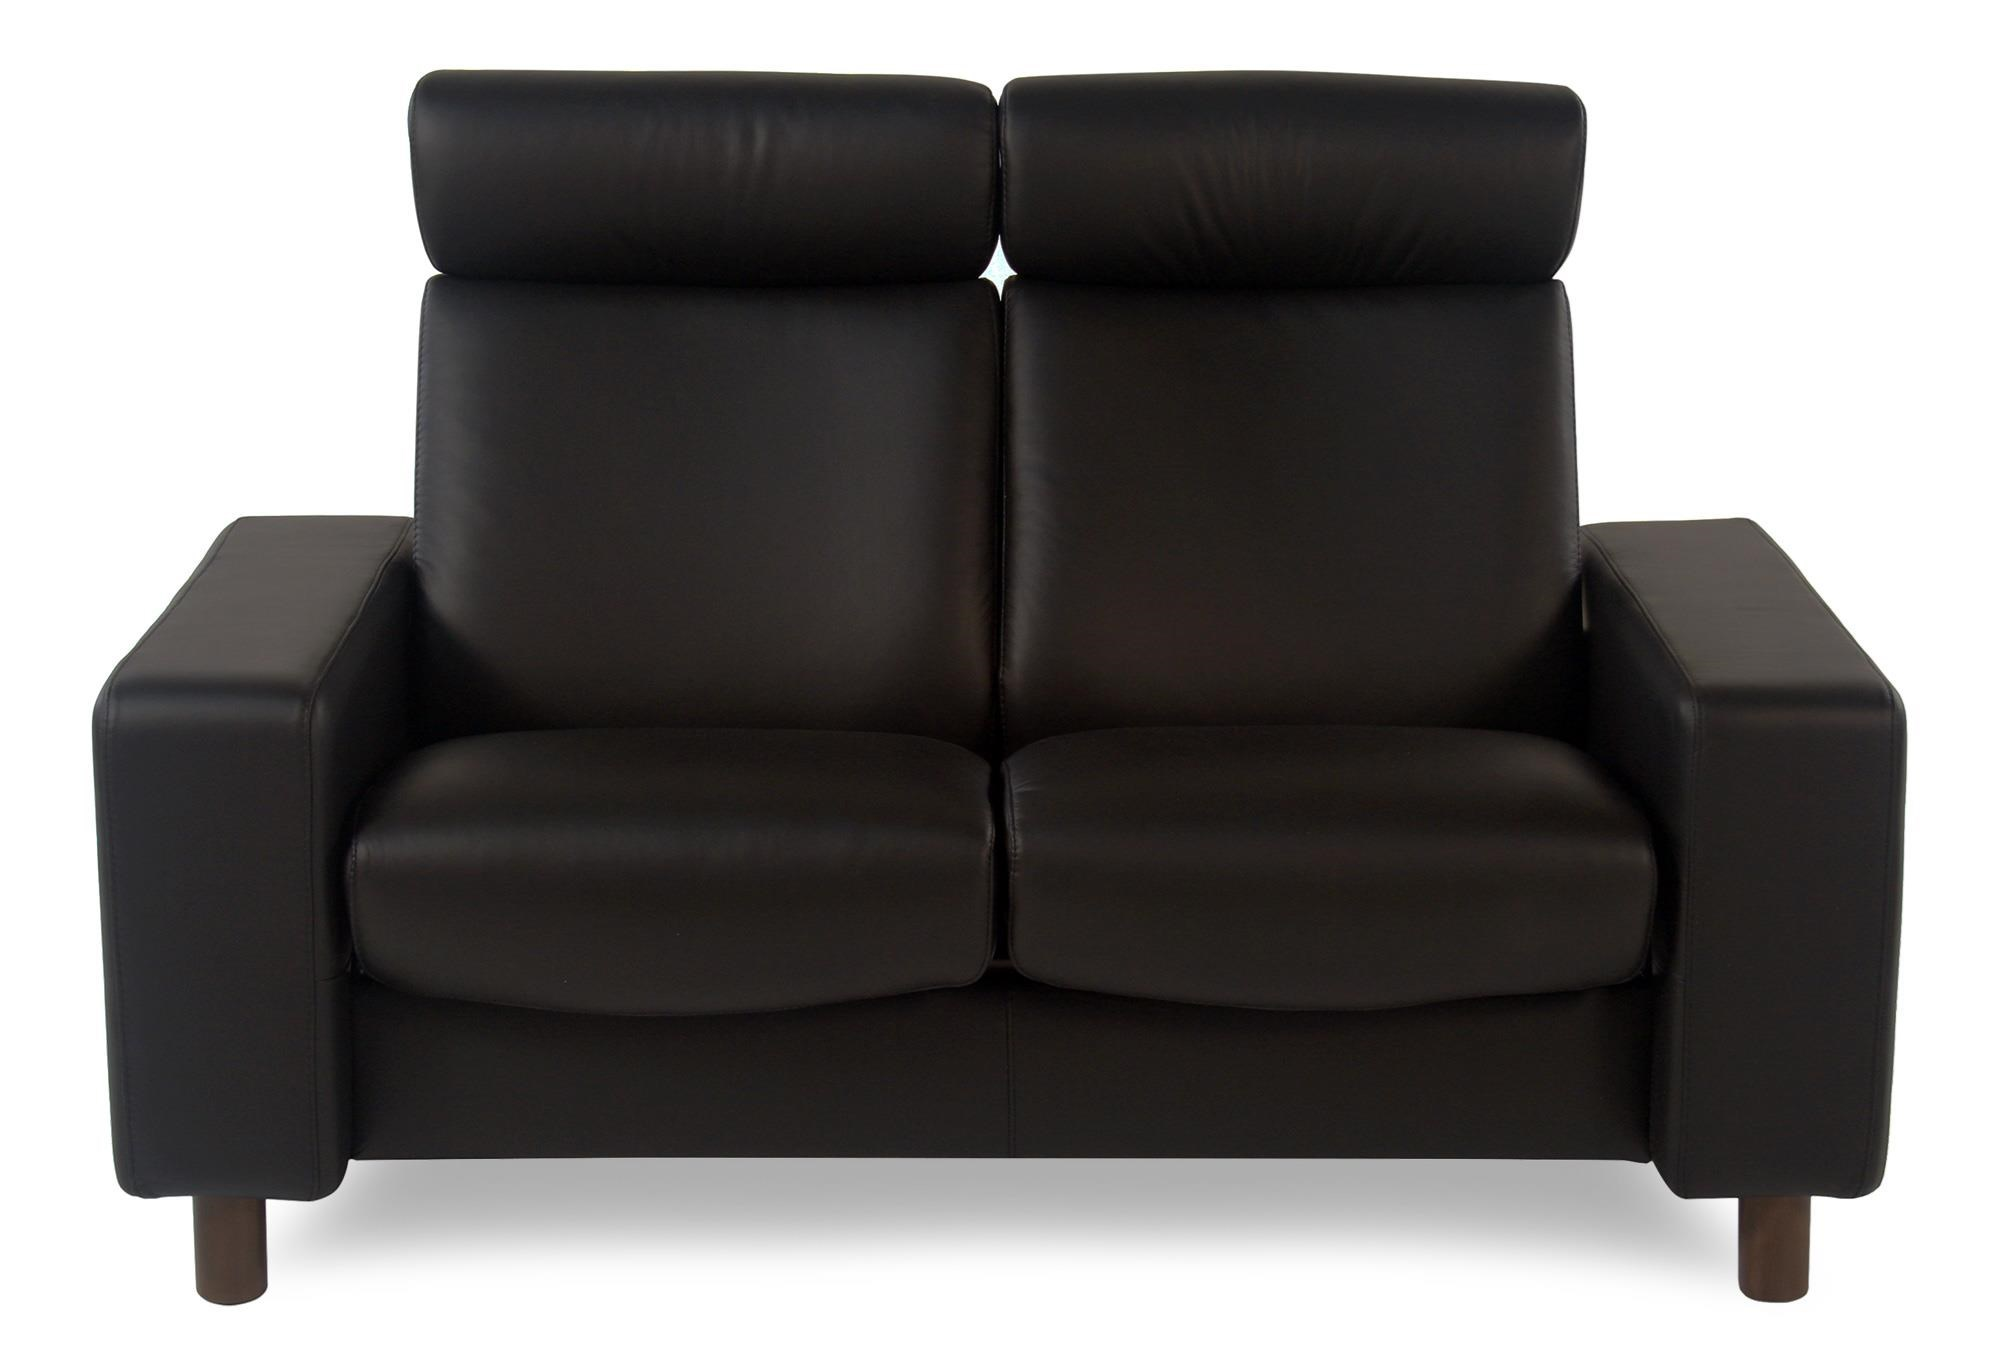 2-Seat High Back Loveseat: Paloma Black w/ Walnut Finish